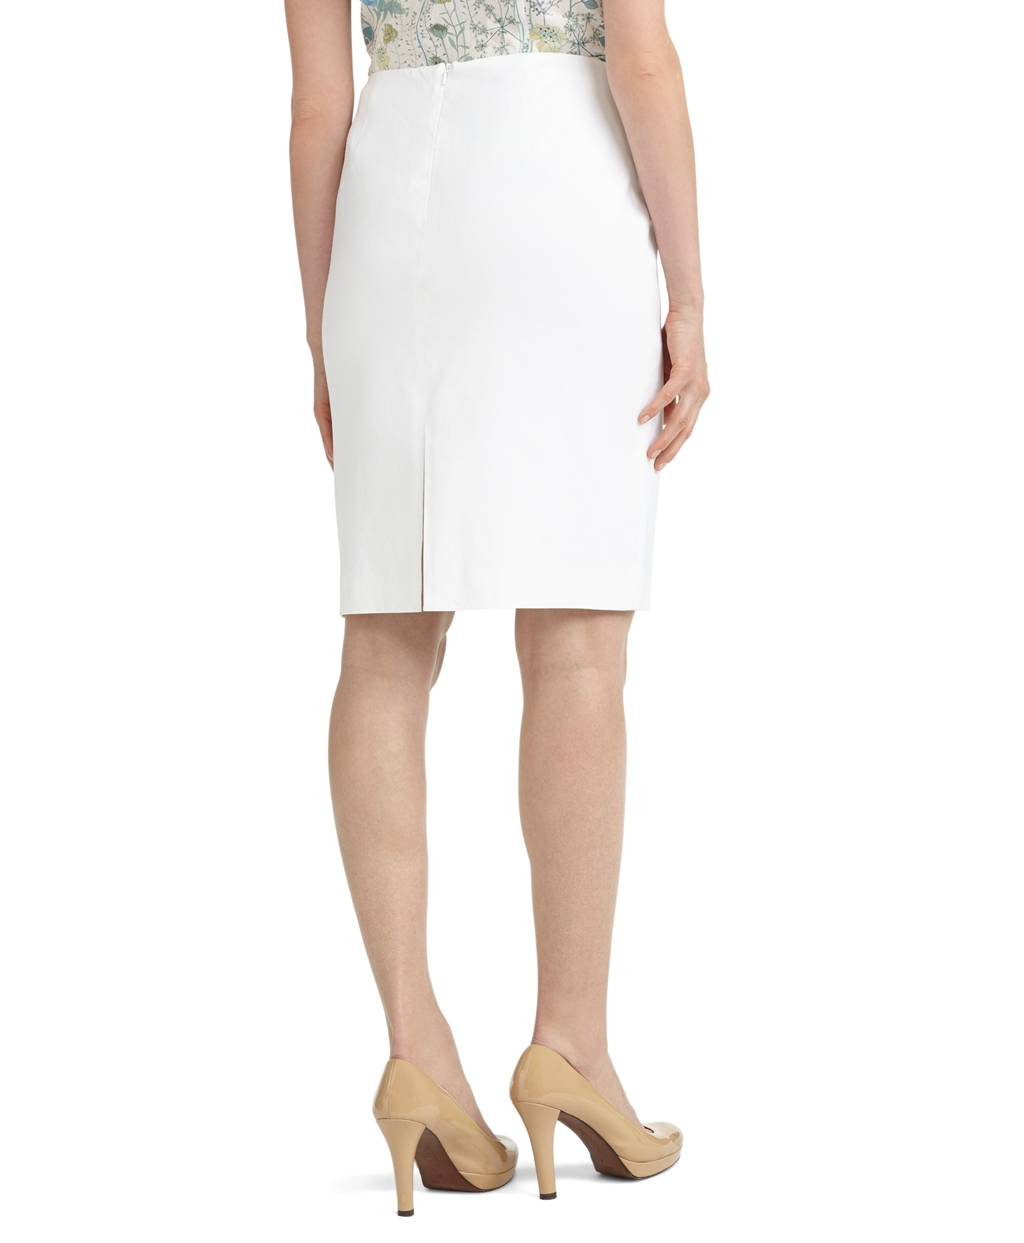 Lyst - Brooks brothers Linen Pencil Skirt in White